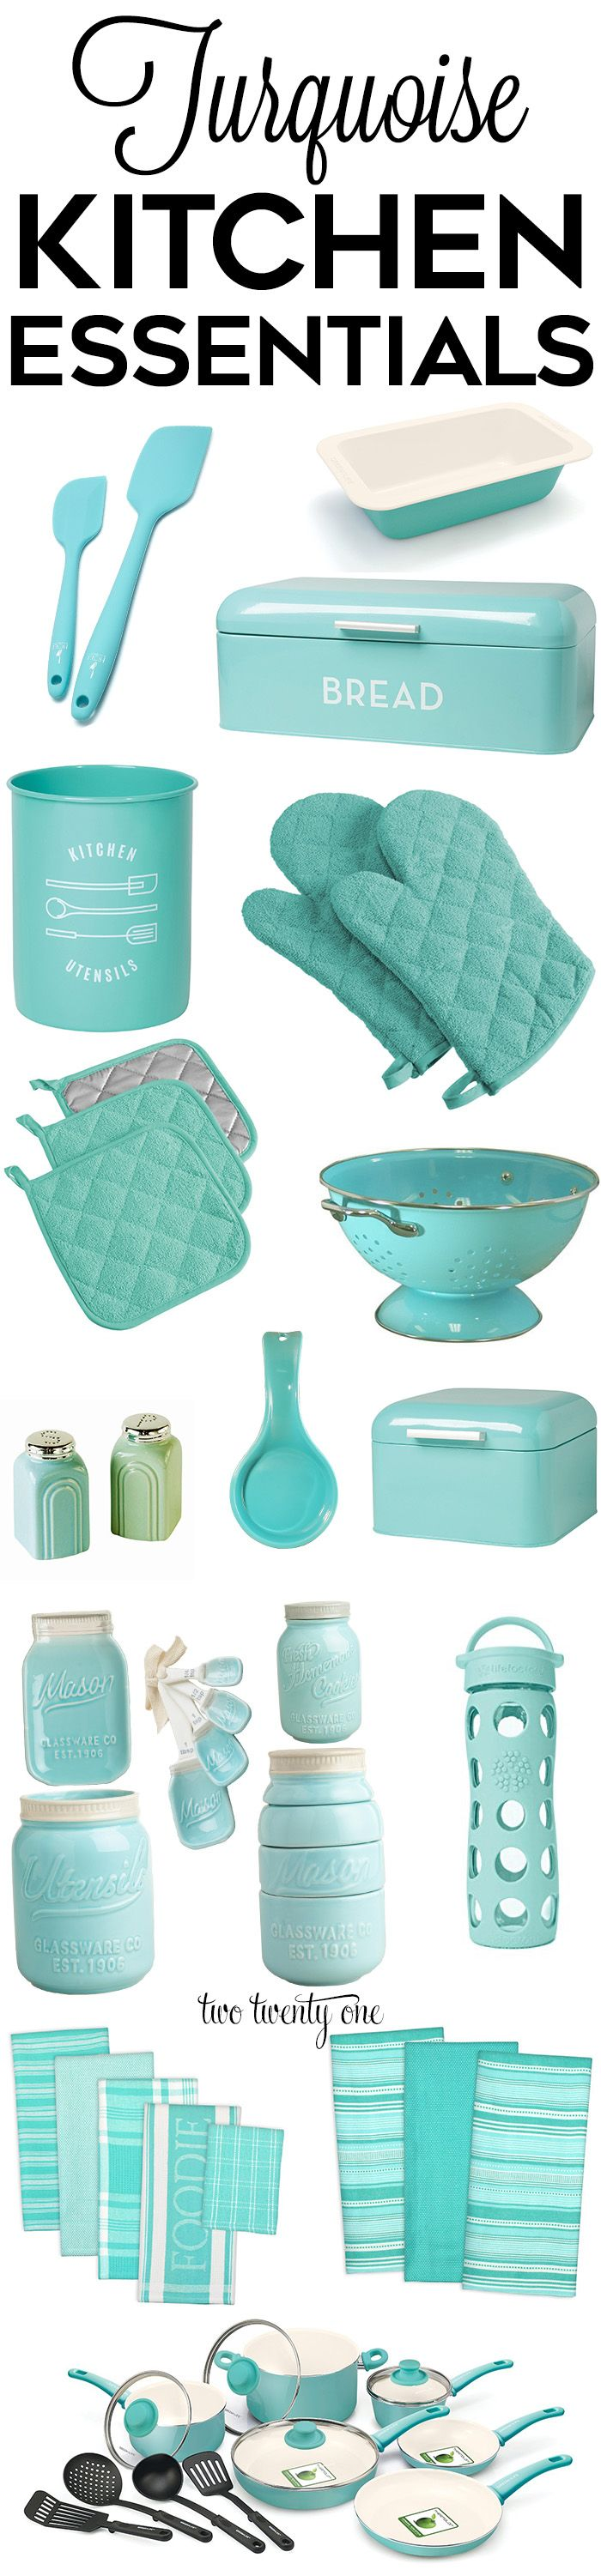 best 25+ teal kitchen ideas on pinterest | bohemian kitchen, blue